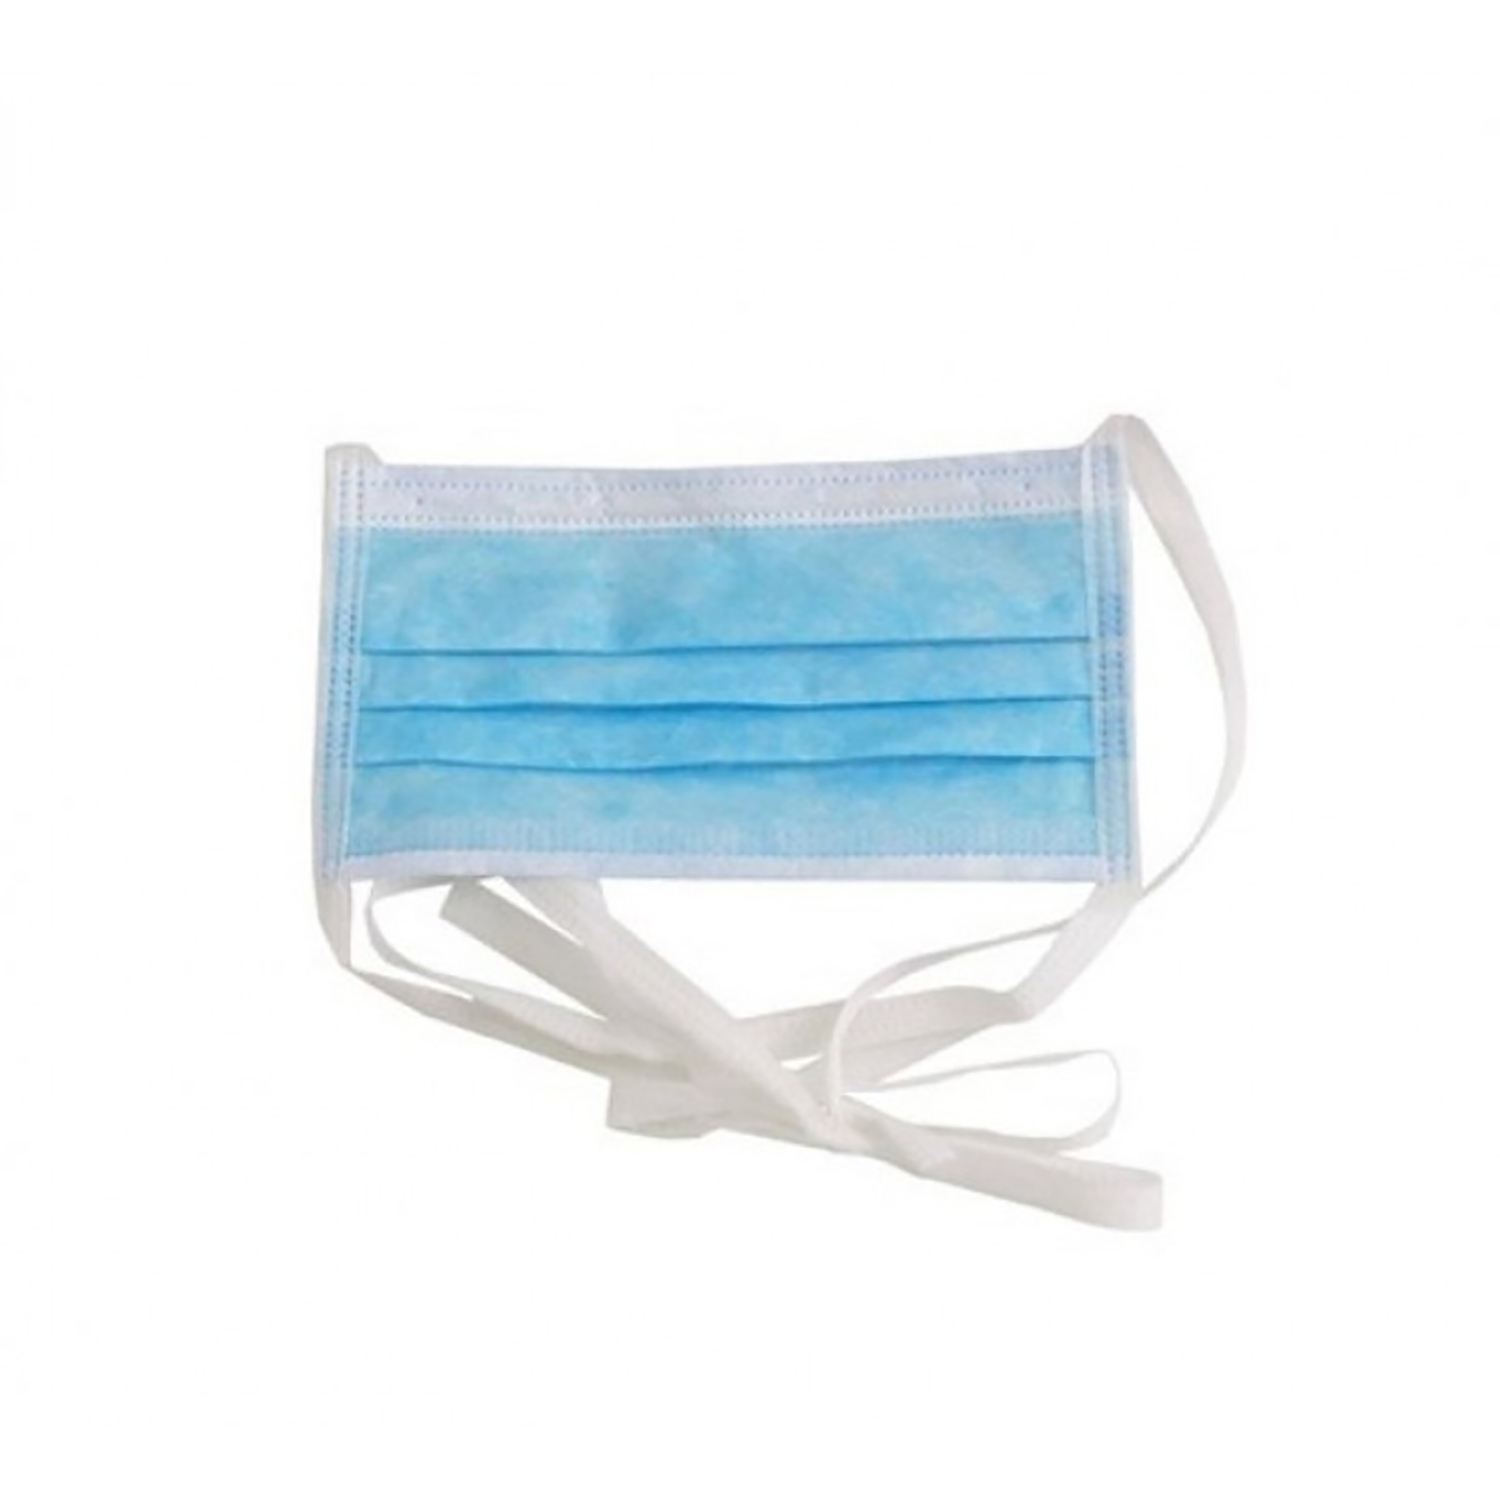 Masque buccal chirurgical type IIR - 3 couches - 4 lanières (50 pcs)